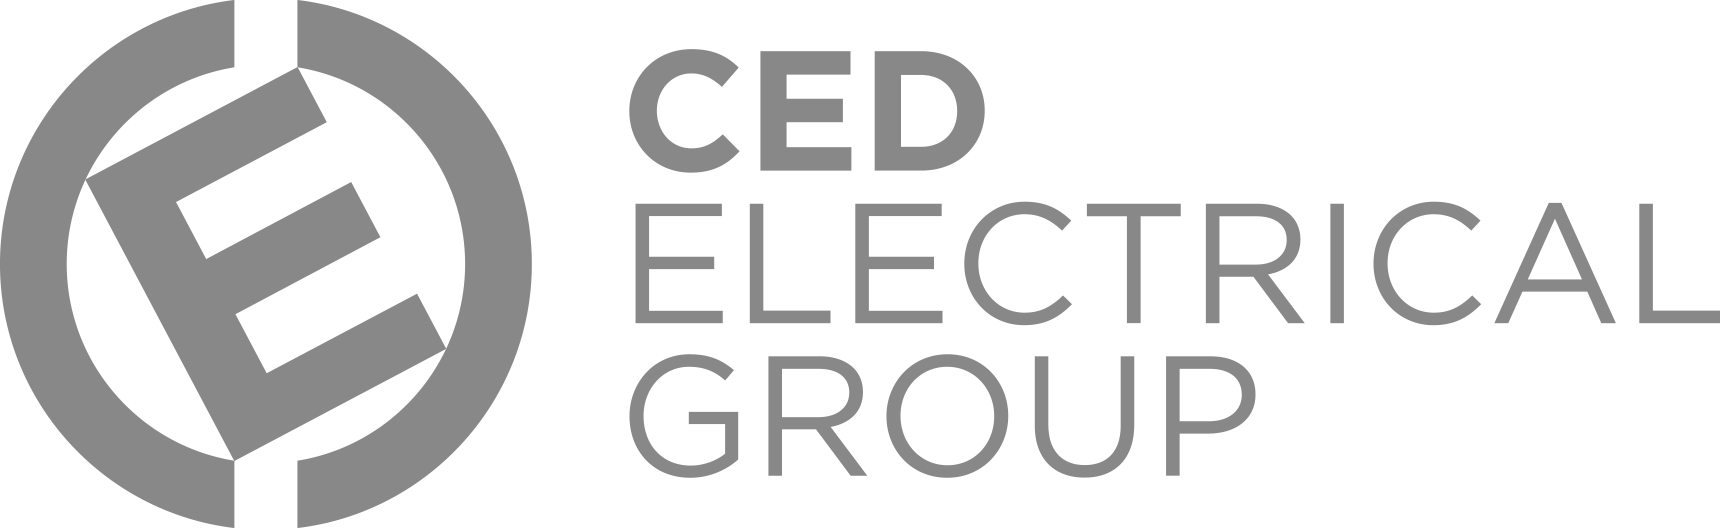 CED Electrical Group